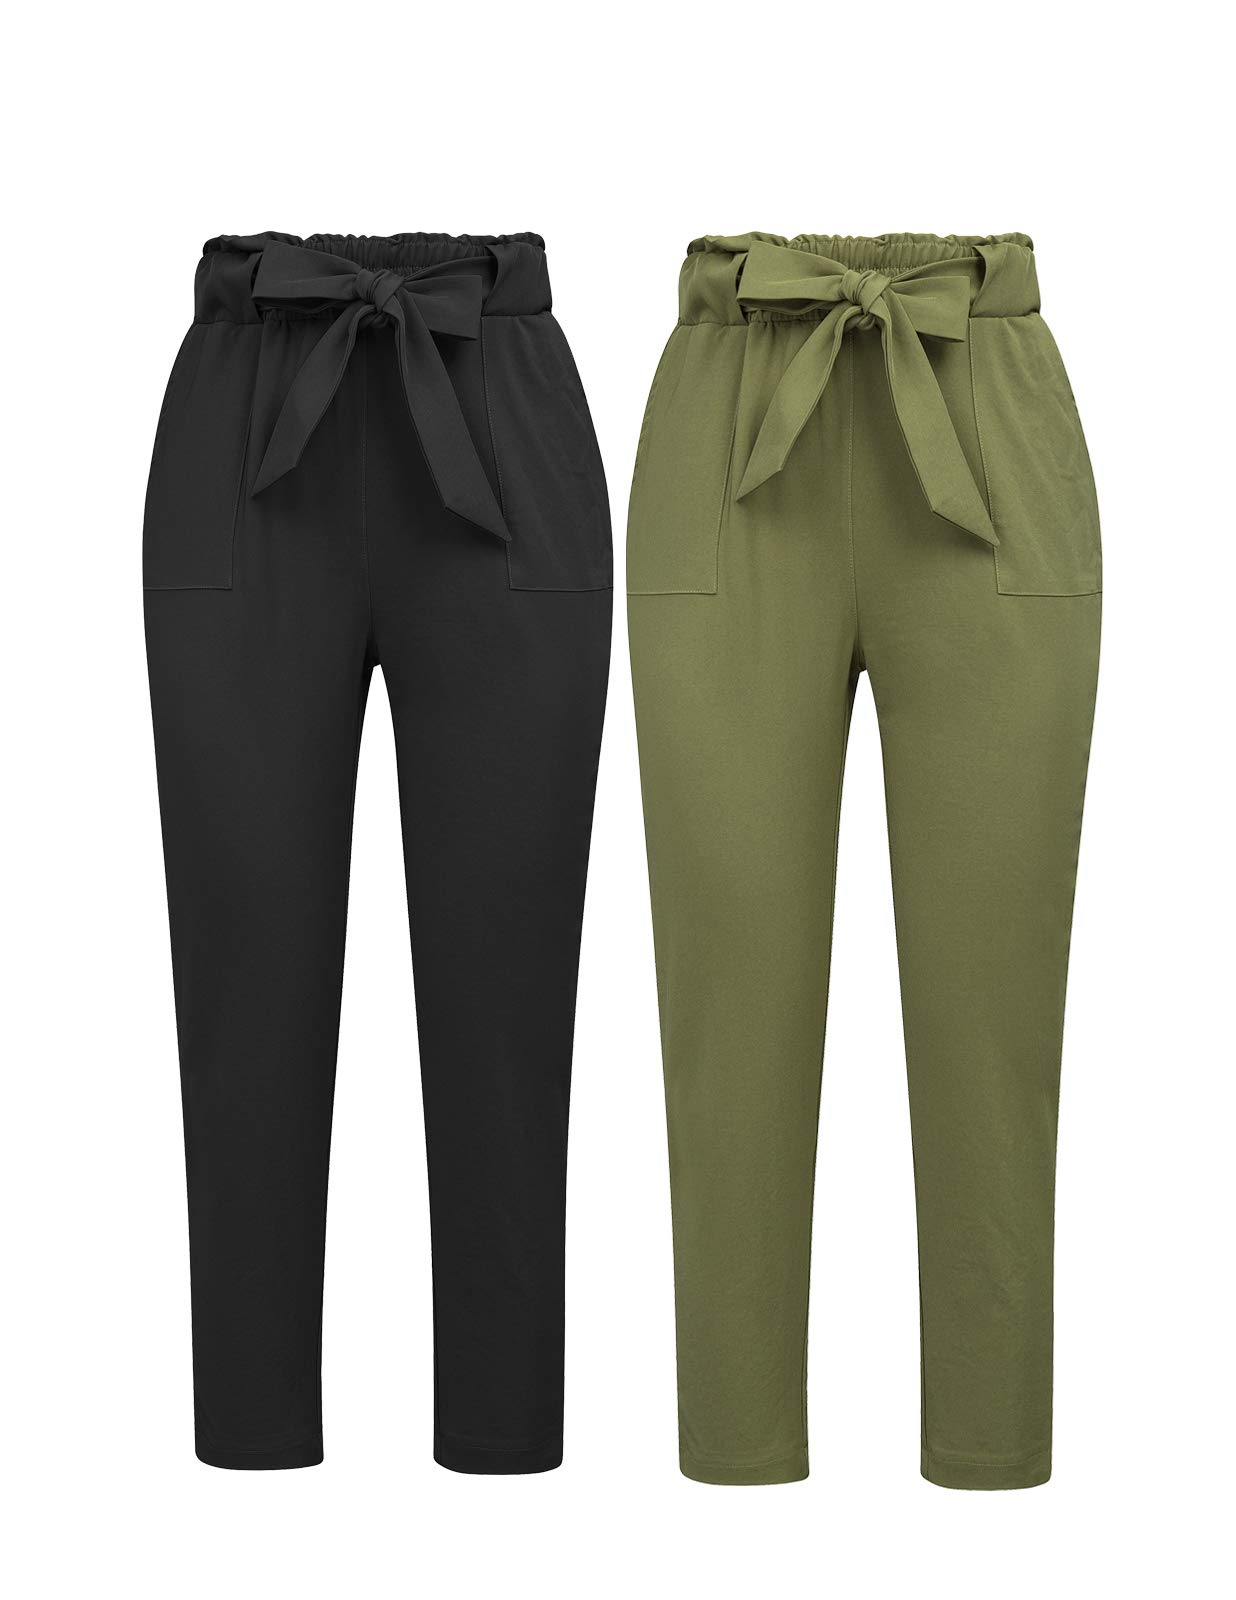 GRACE KARIN Women's Pants Trouser Slim Casual Cropped Paper Bag Waist Pants with Pockets (X-Large, Black+Army Green)